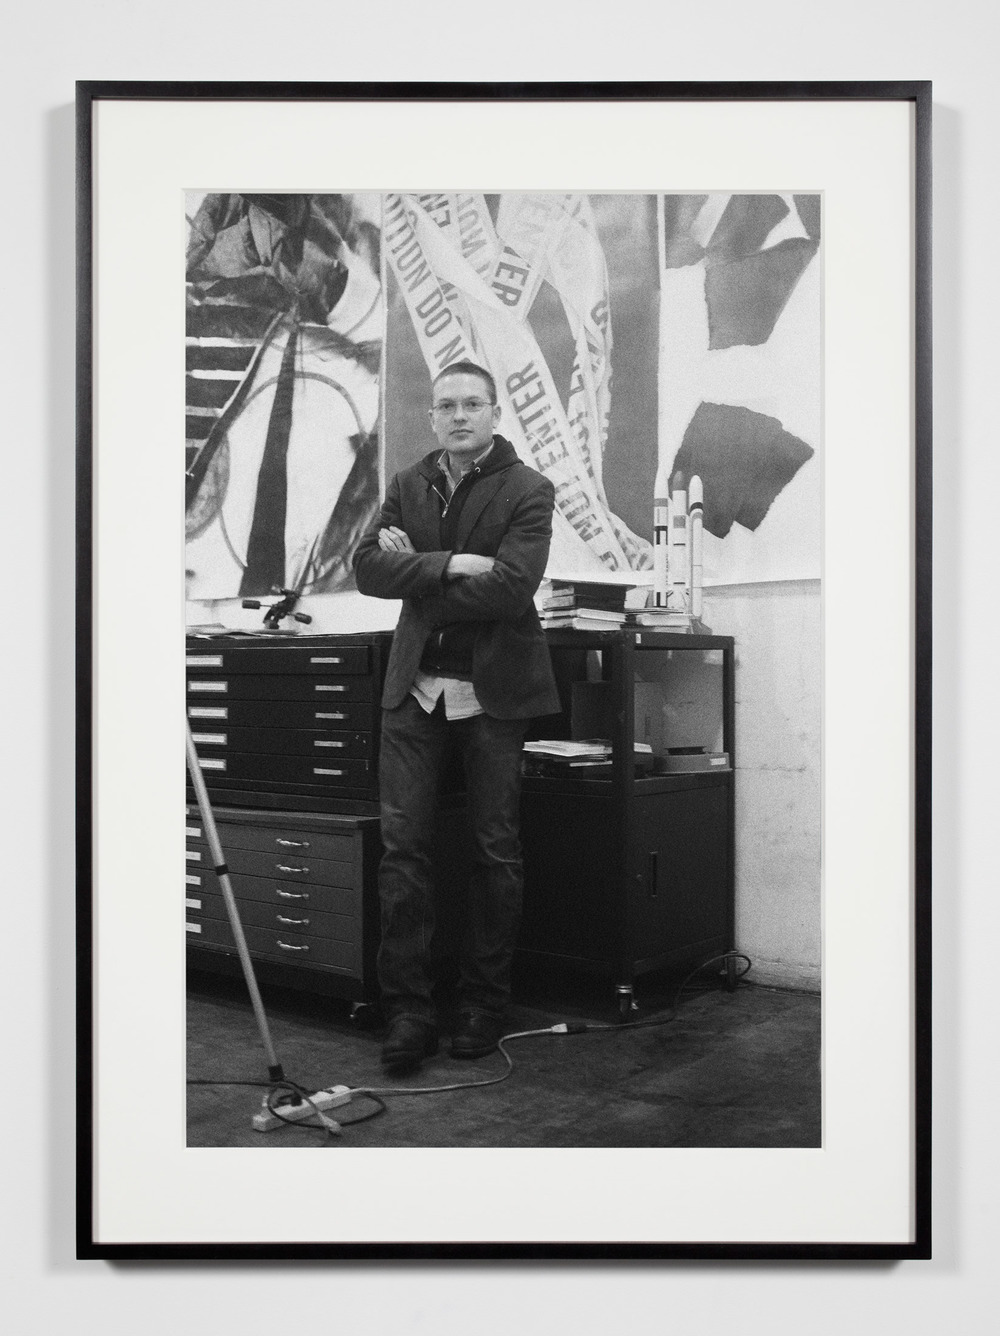 Artist, Los Angeles, California, February 8, 2009    2011   Epson Ultrachrome K3 archival ink jet print on Hahnemühle Photo Rag paper  36 3/8 x 26 3/8 inches   Industrial Portraits, 2008–